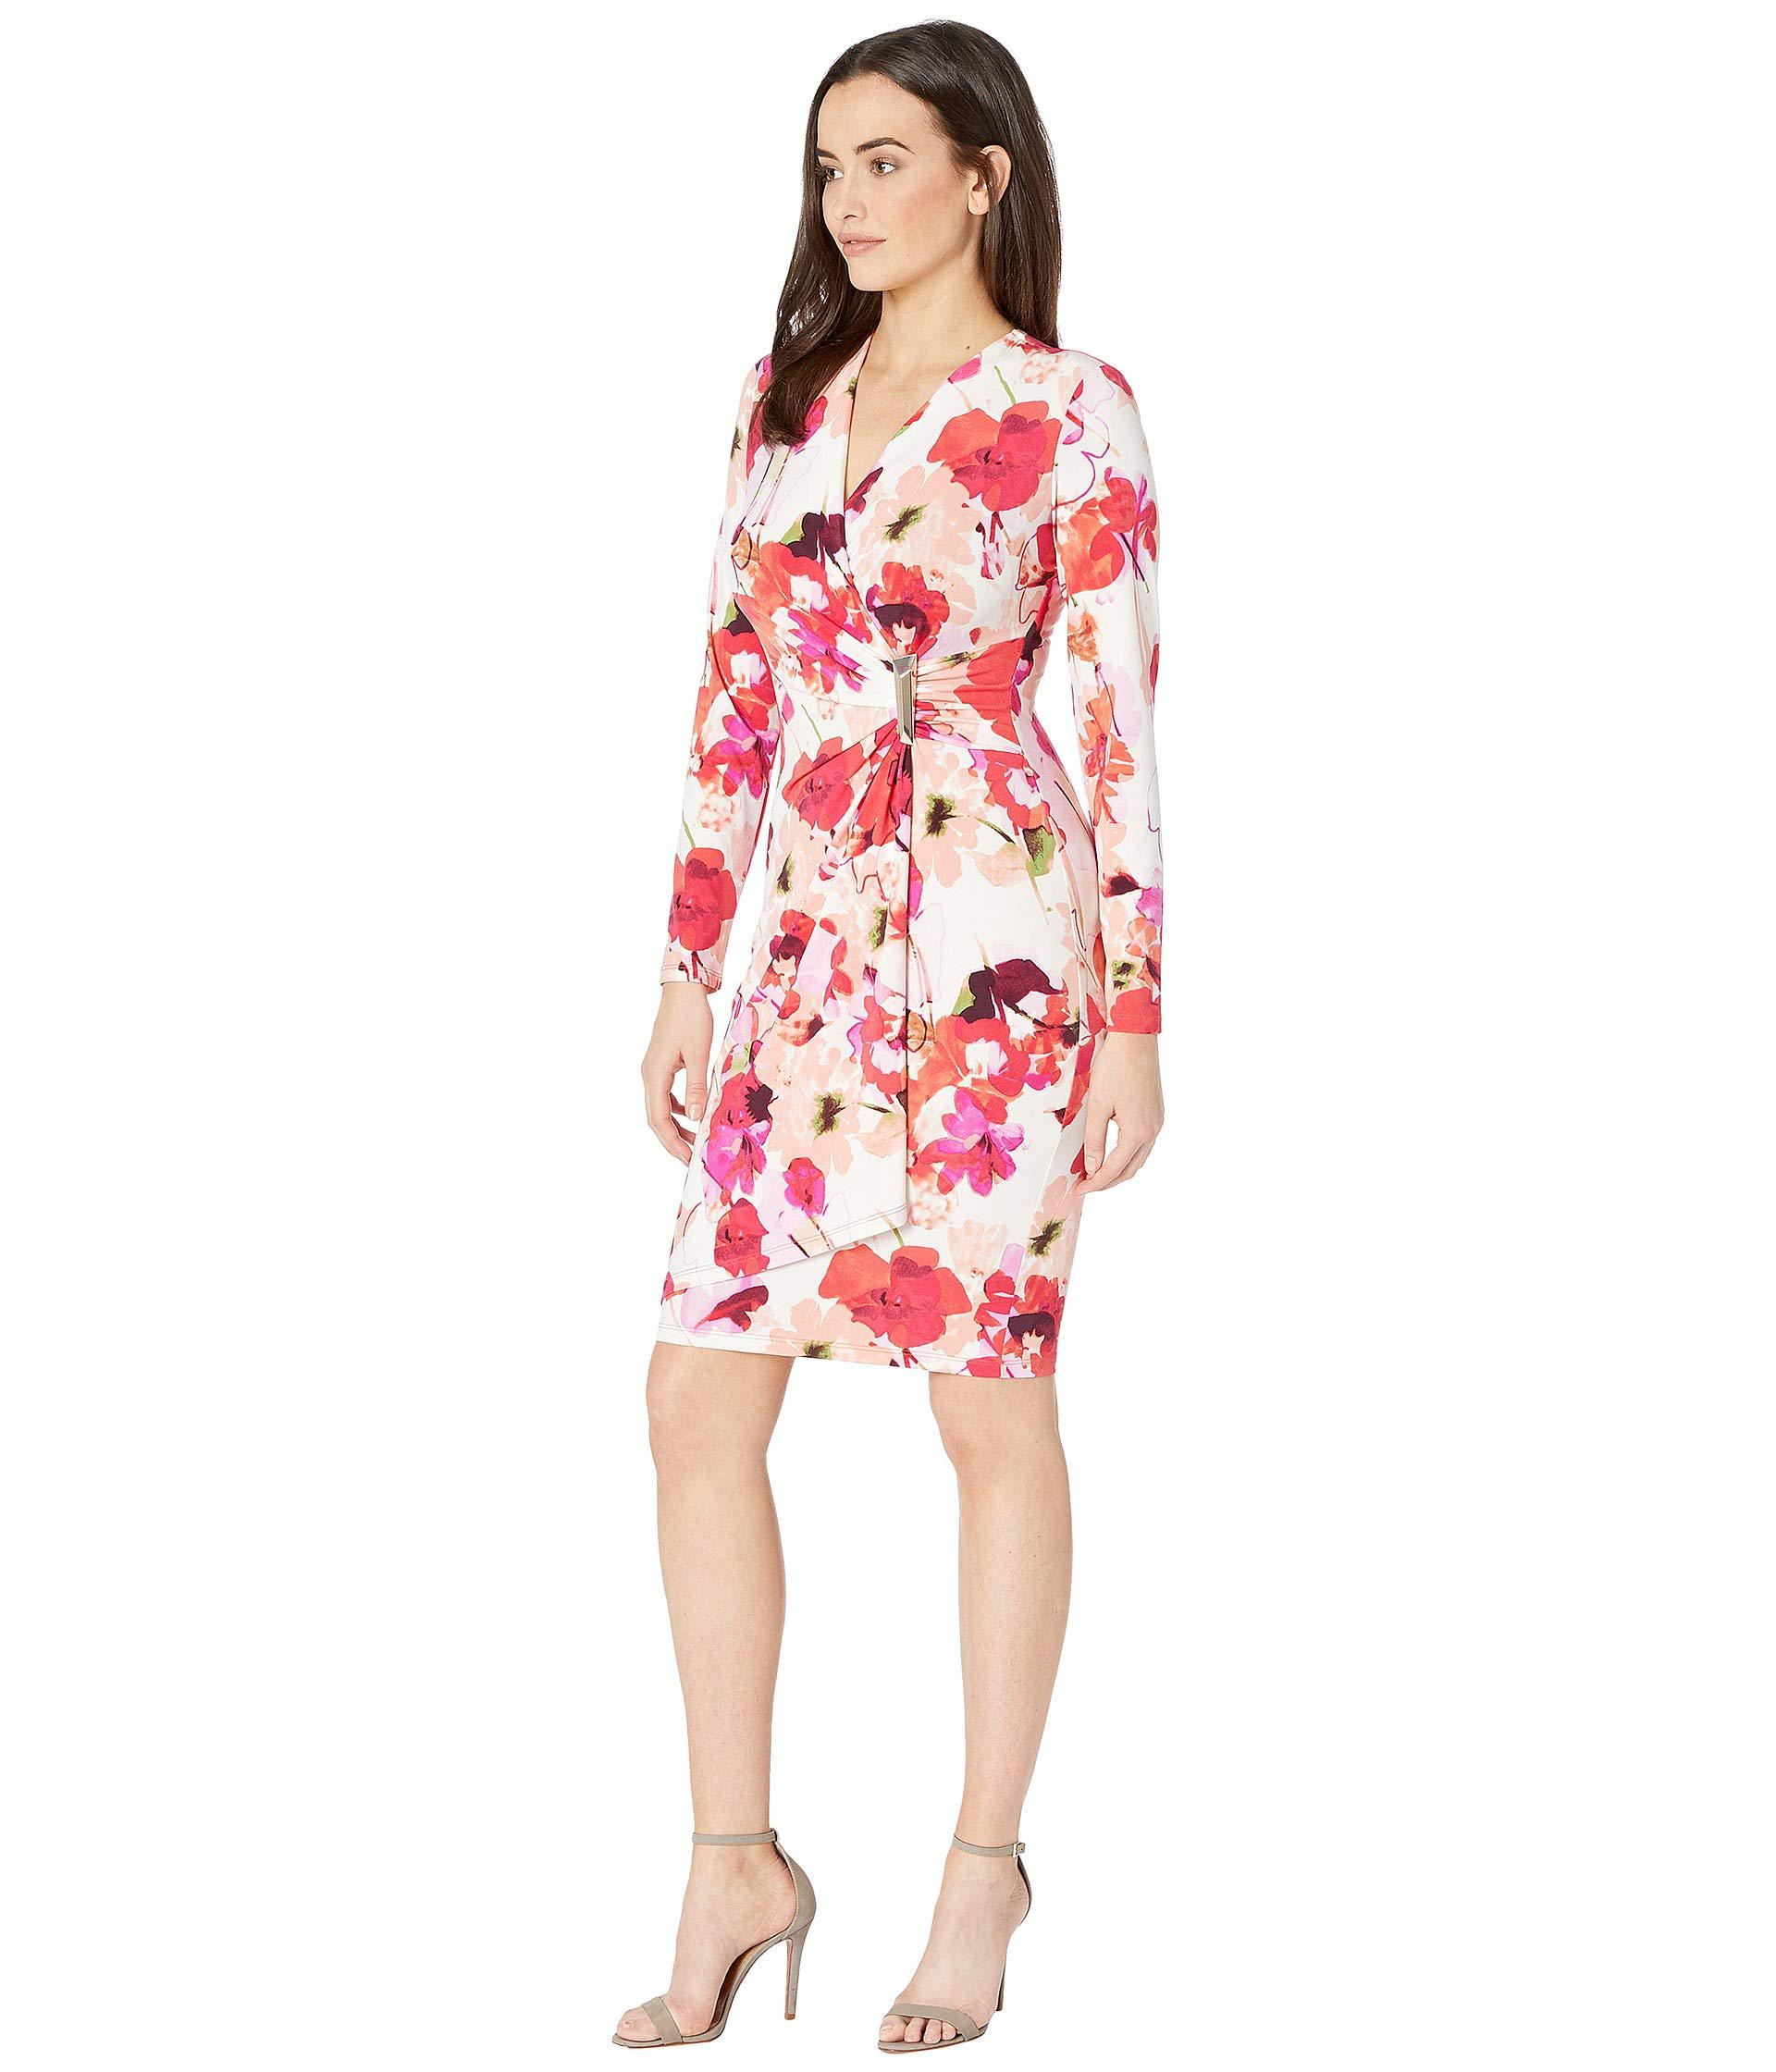 88271b076cc Calvin Klein Floral Print Faux Wrap Dress With Hardware Side Tab Cd8ab32r  (ember Multi) Women s Dress in Red - Lyst